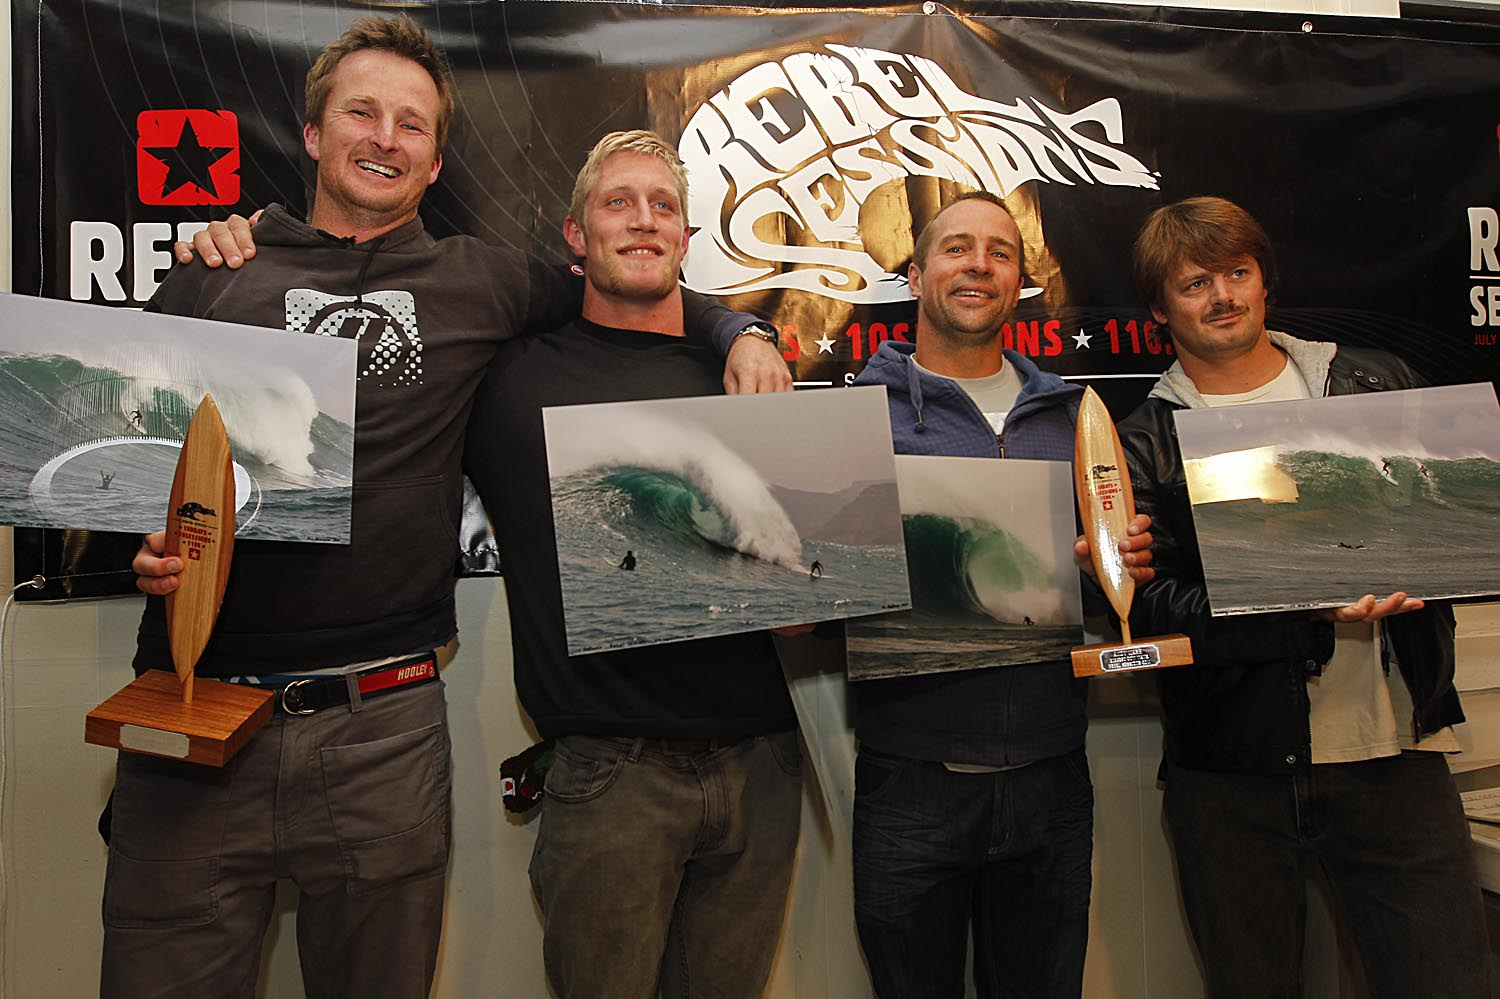 Rebel Sessions 2011 – Winners